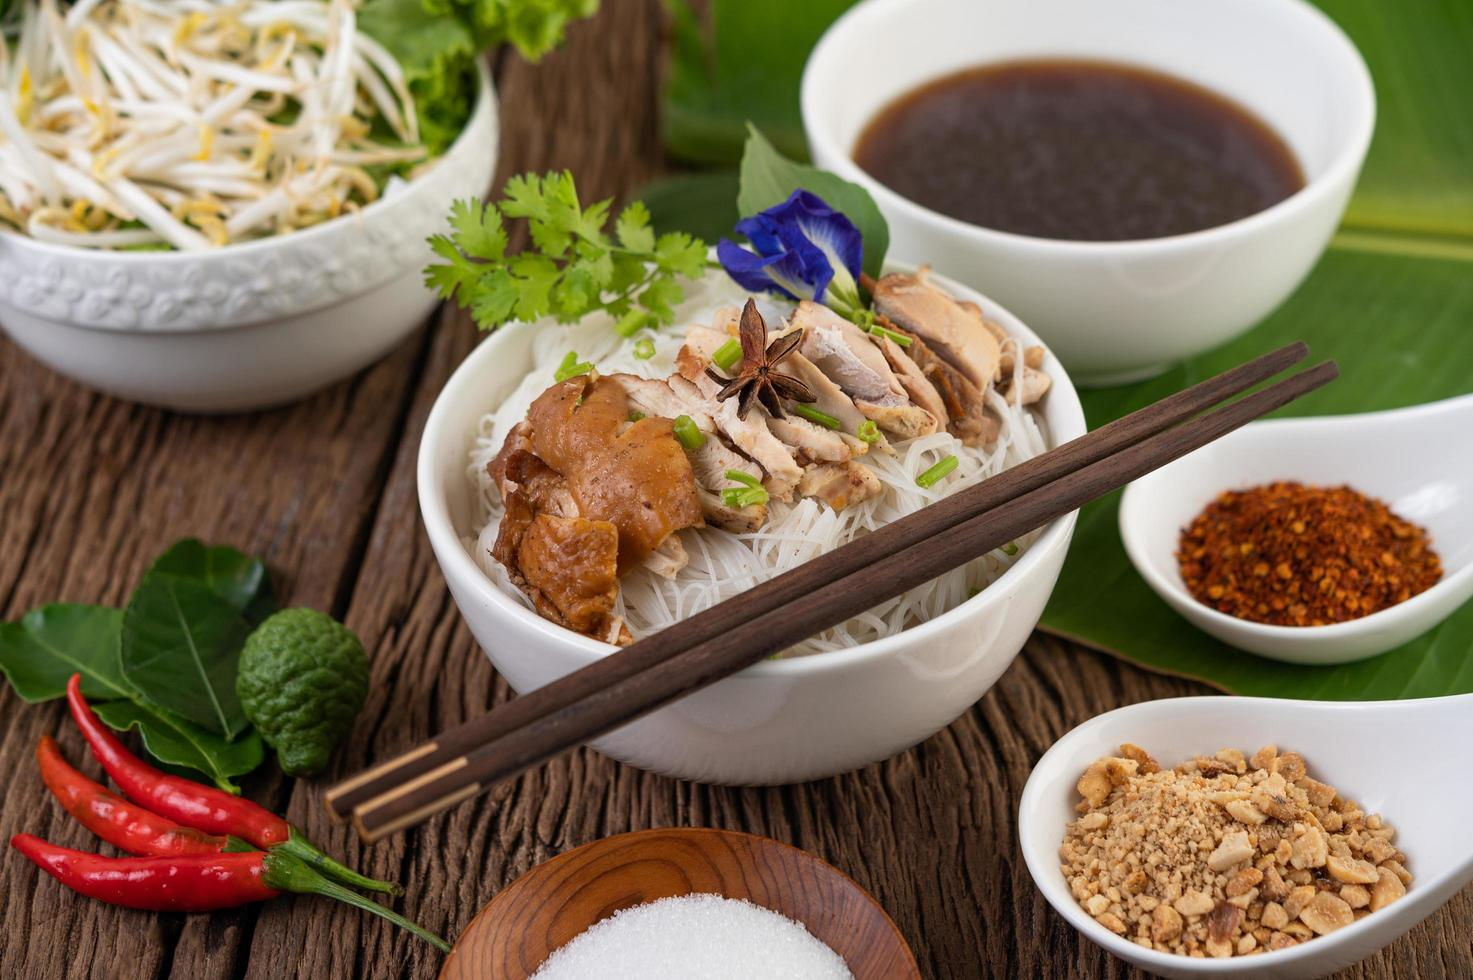 Chicken noodles in a bowl with Thai side dishes photo